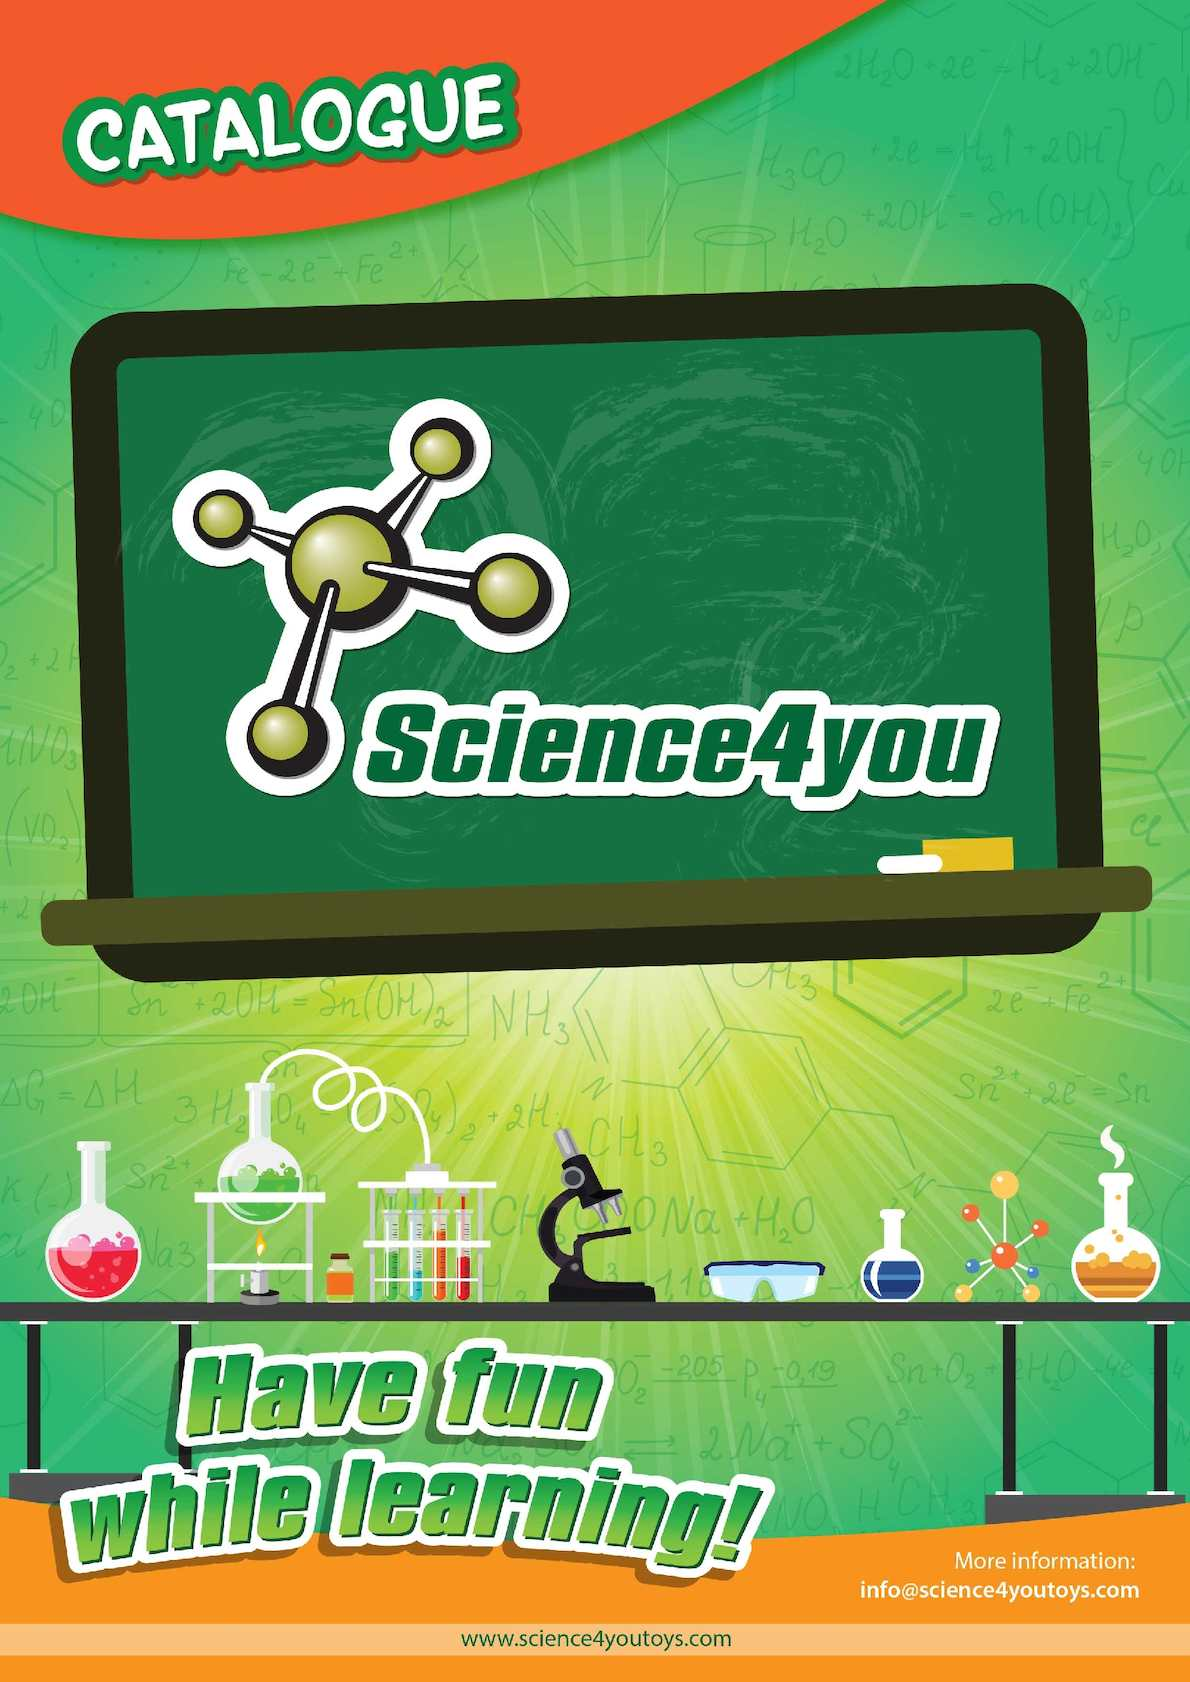 Science4you Catalogue